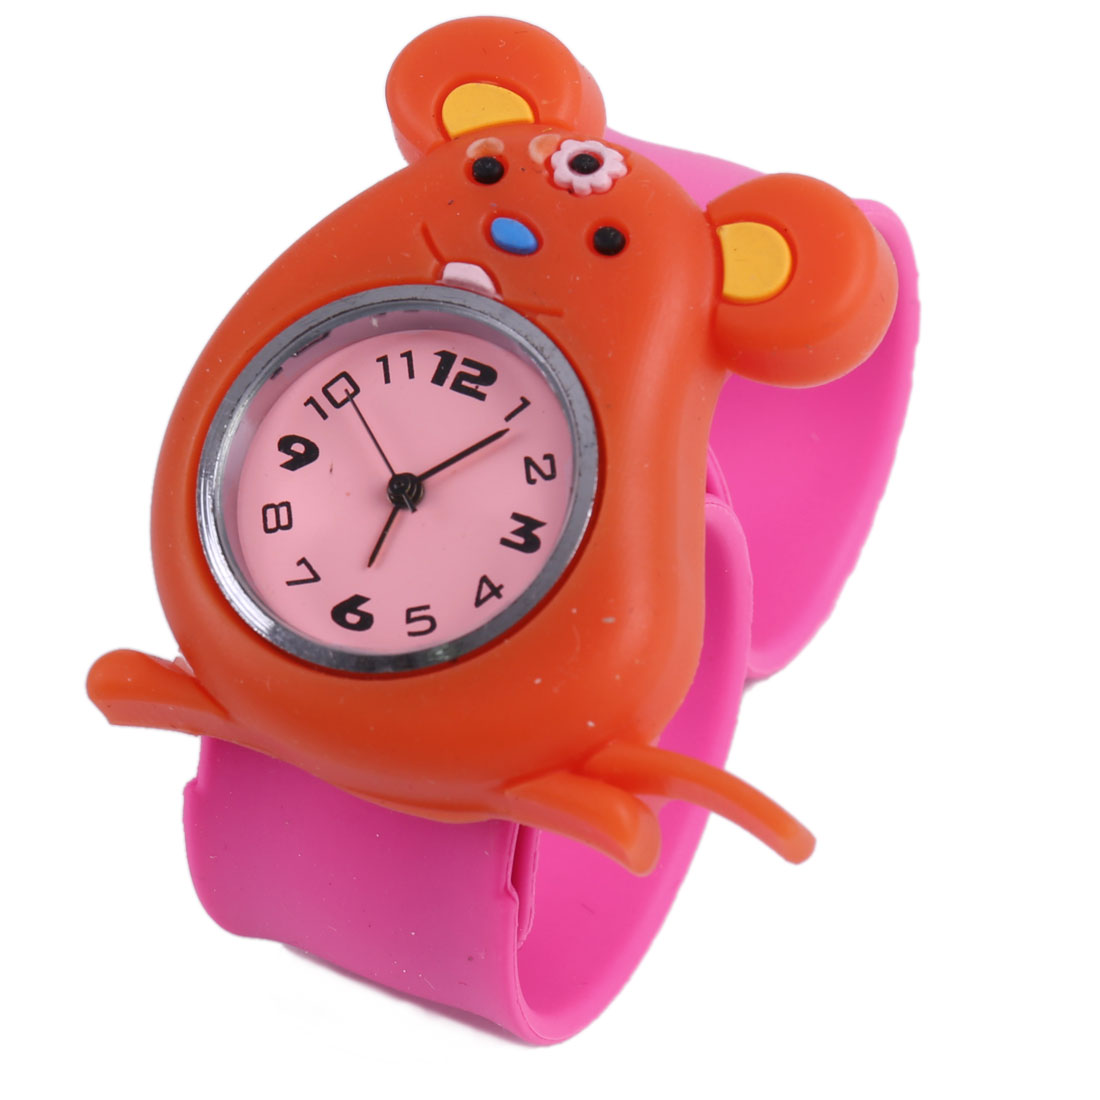 Chic Orange Cartoon Mouse Dial Hot Pink Bangel Band Watch for Kids